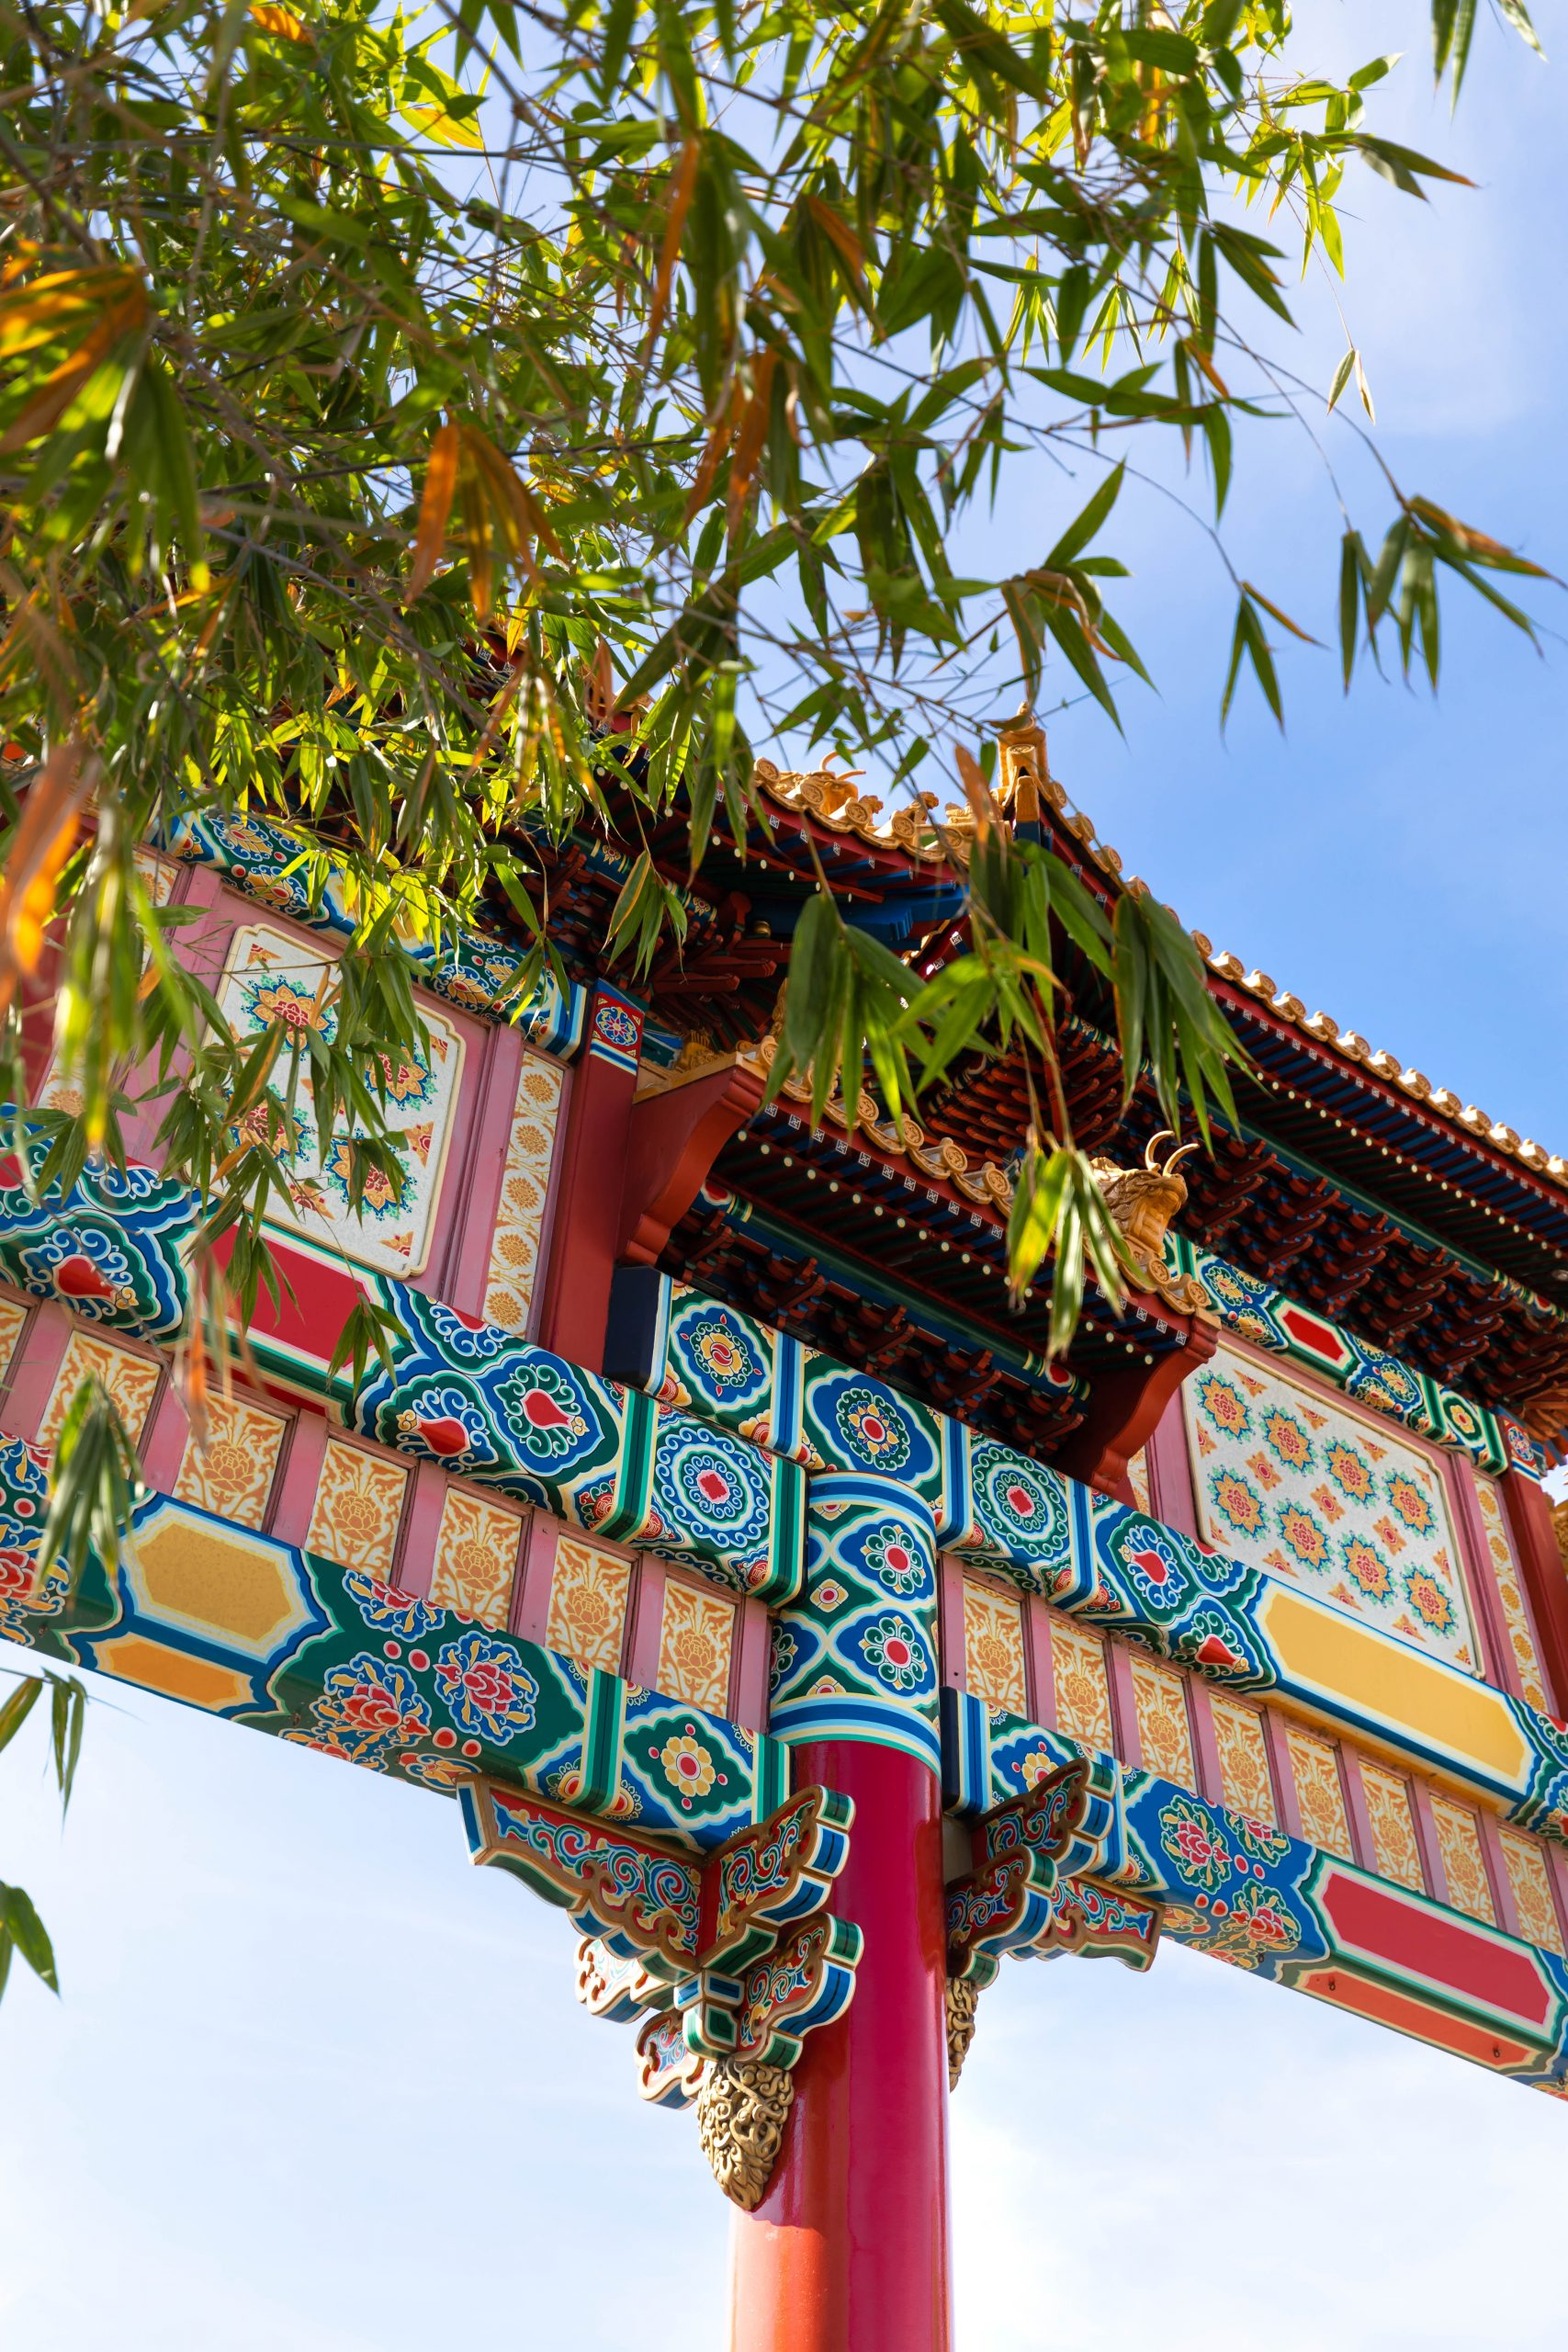 Temple of Heaven's Main Gate in Beijing China at Epcot Walt Disney World by Luxury Travel Writer and Photographer Annie Fairfax